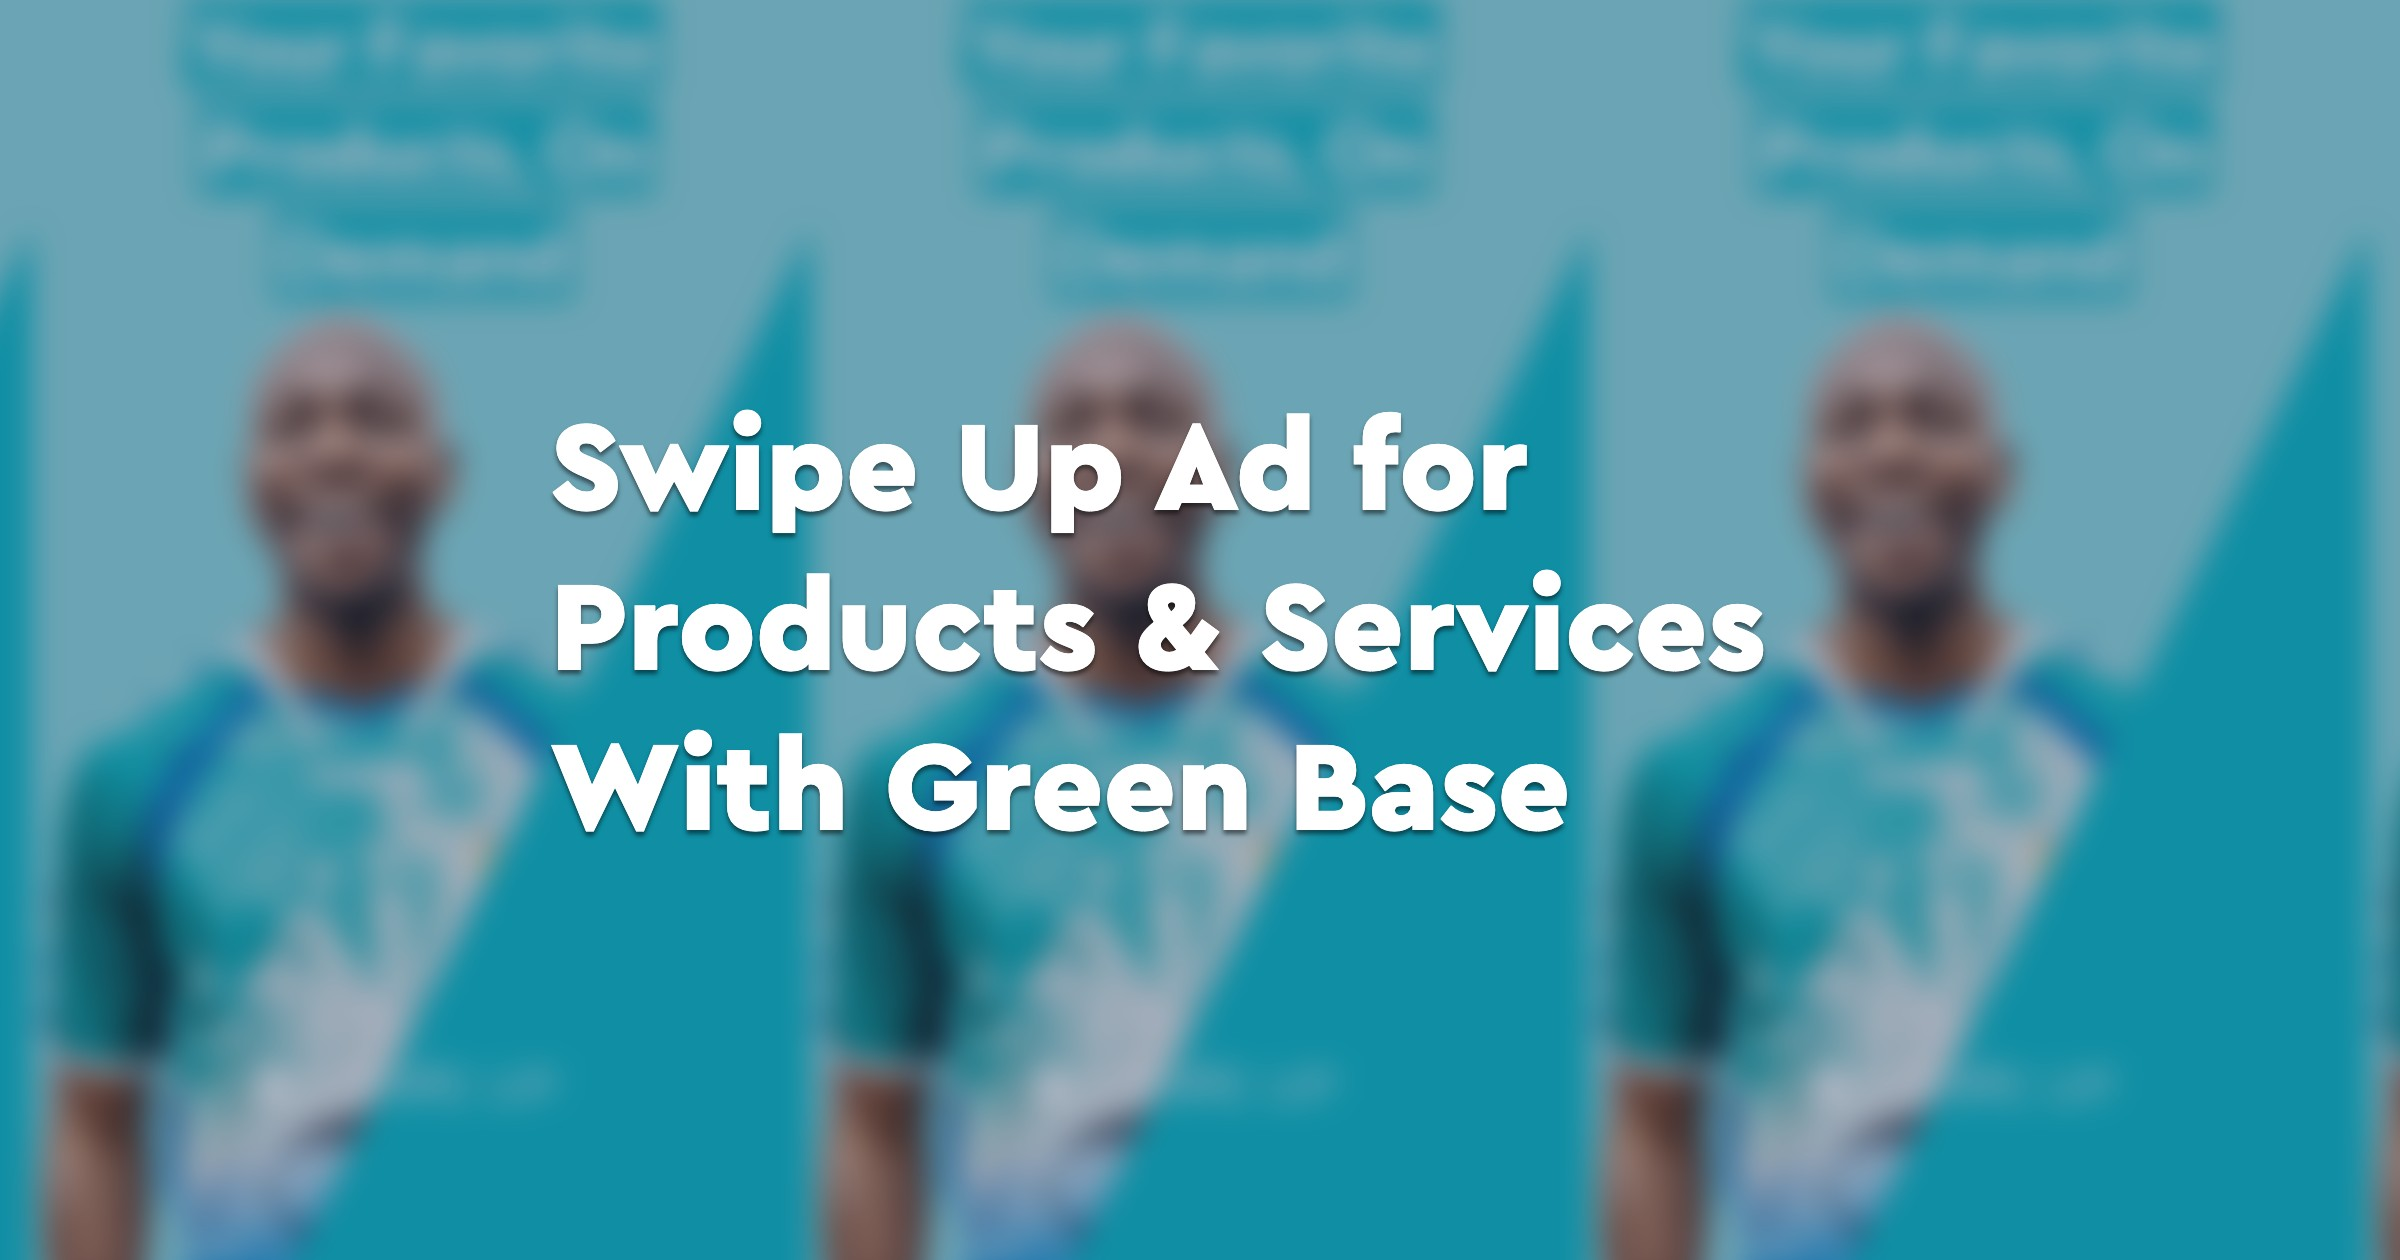 Swipe Up Ad for Products & Services With Green Base